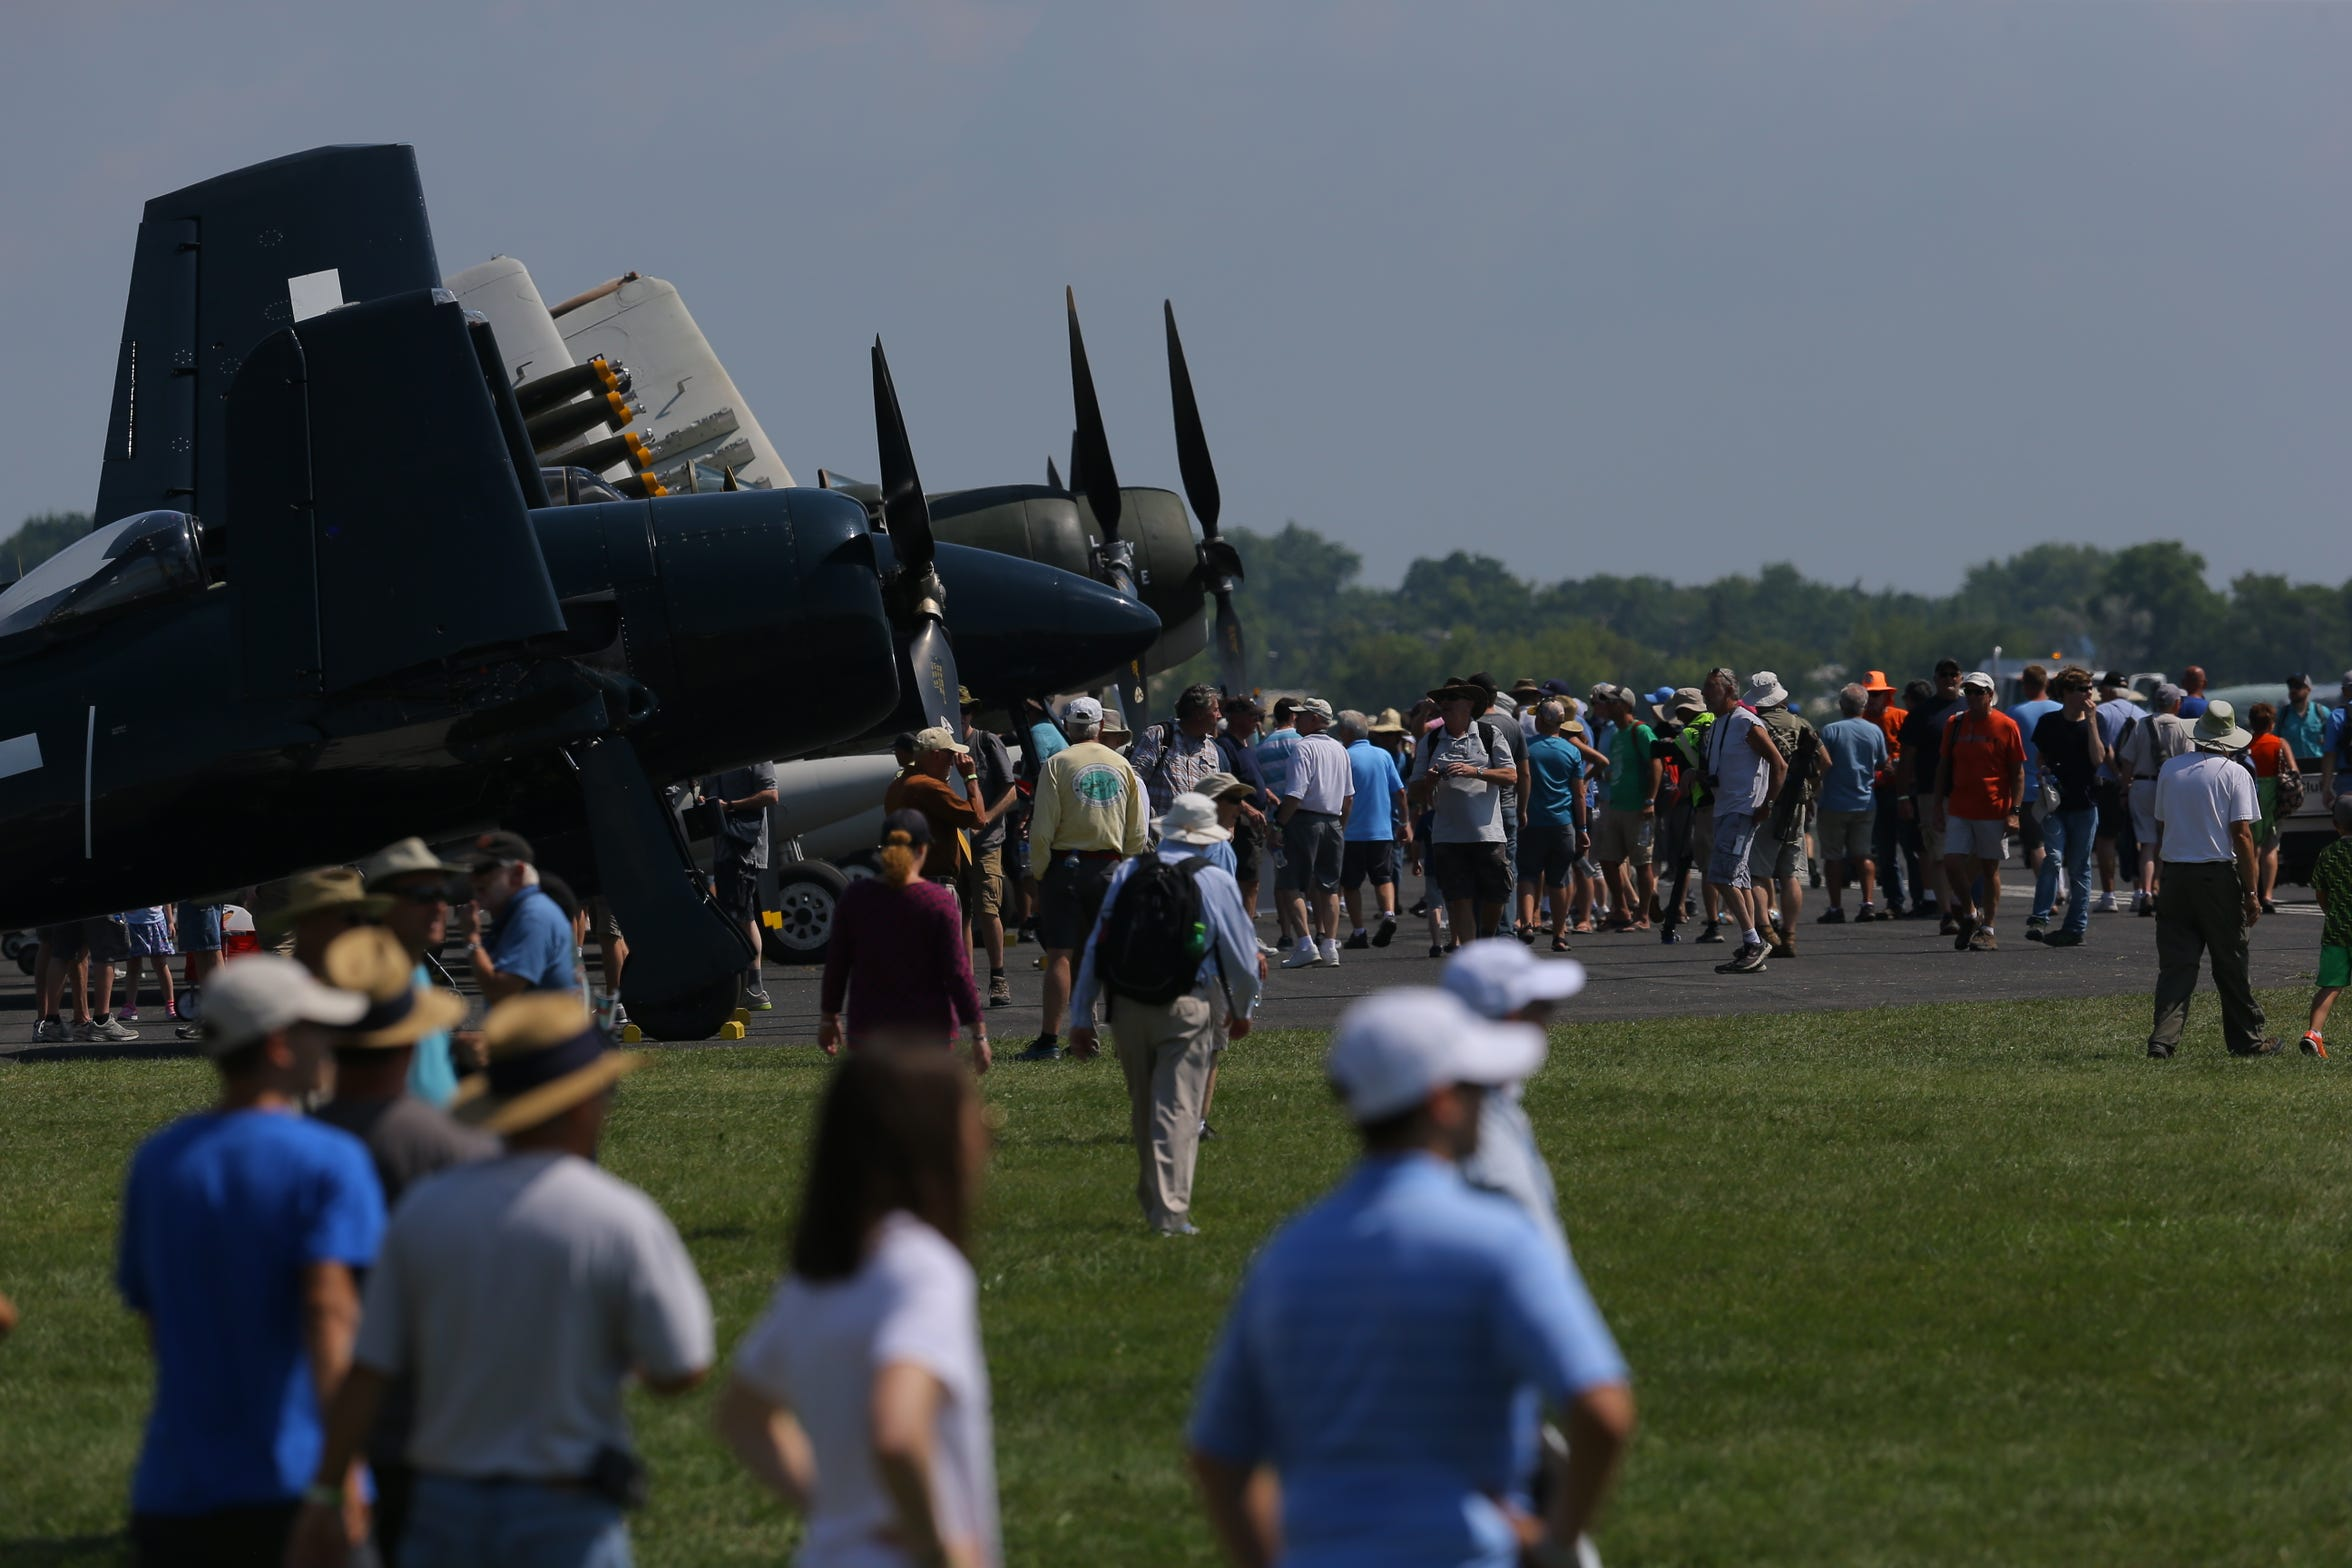 Travelers from all over the world will come to Wisconsin for EAA AirVenture Oshkosh in July.